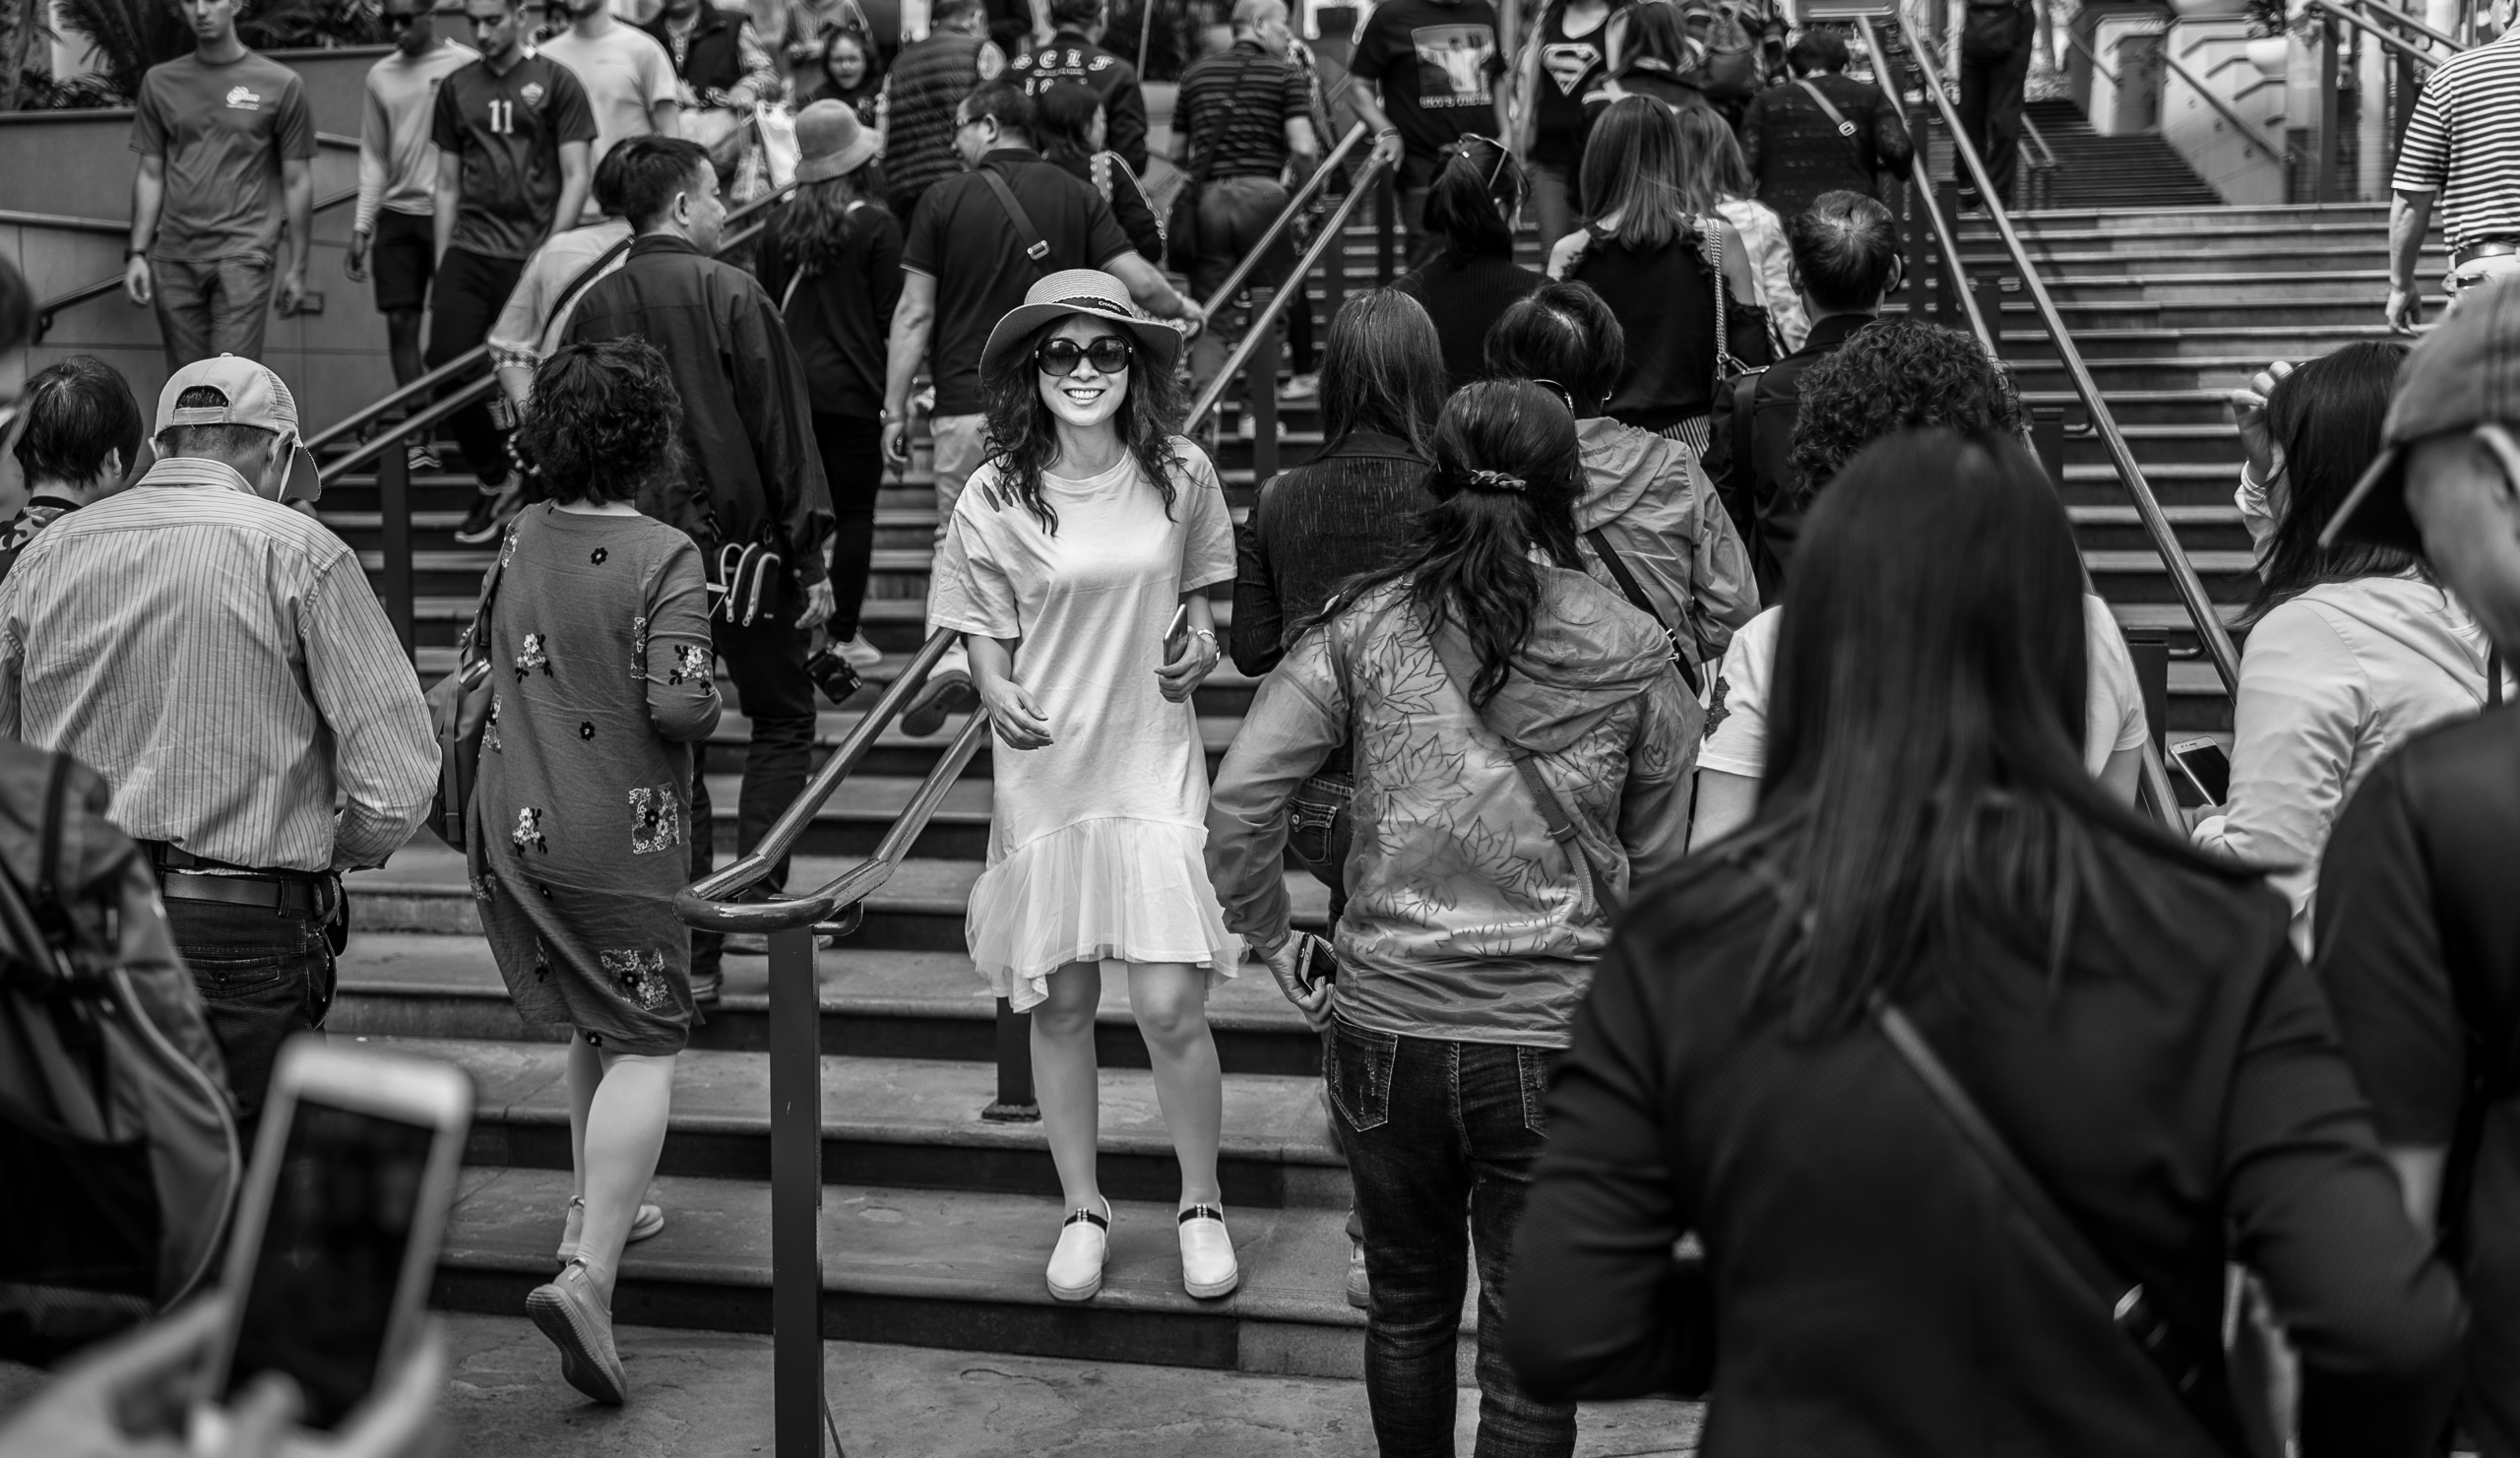 a thick, ocean of people in dark clothing head up the stairs, and away from the camera, at the entrance to the Hollywood & Highland center. In the middle one woman, in a bright, white dress, turns and faces the camera